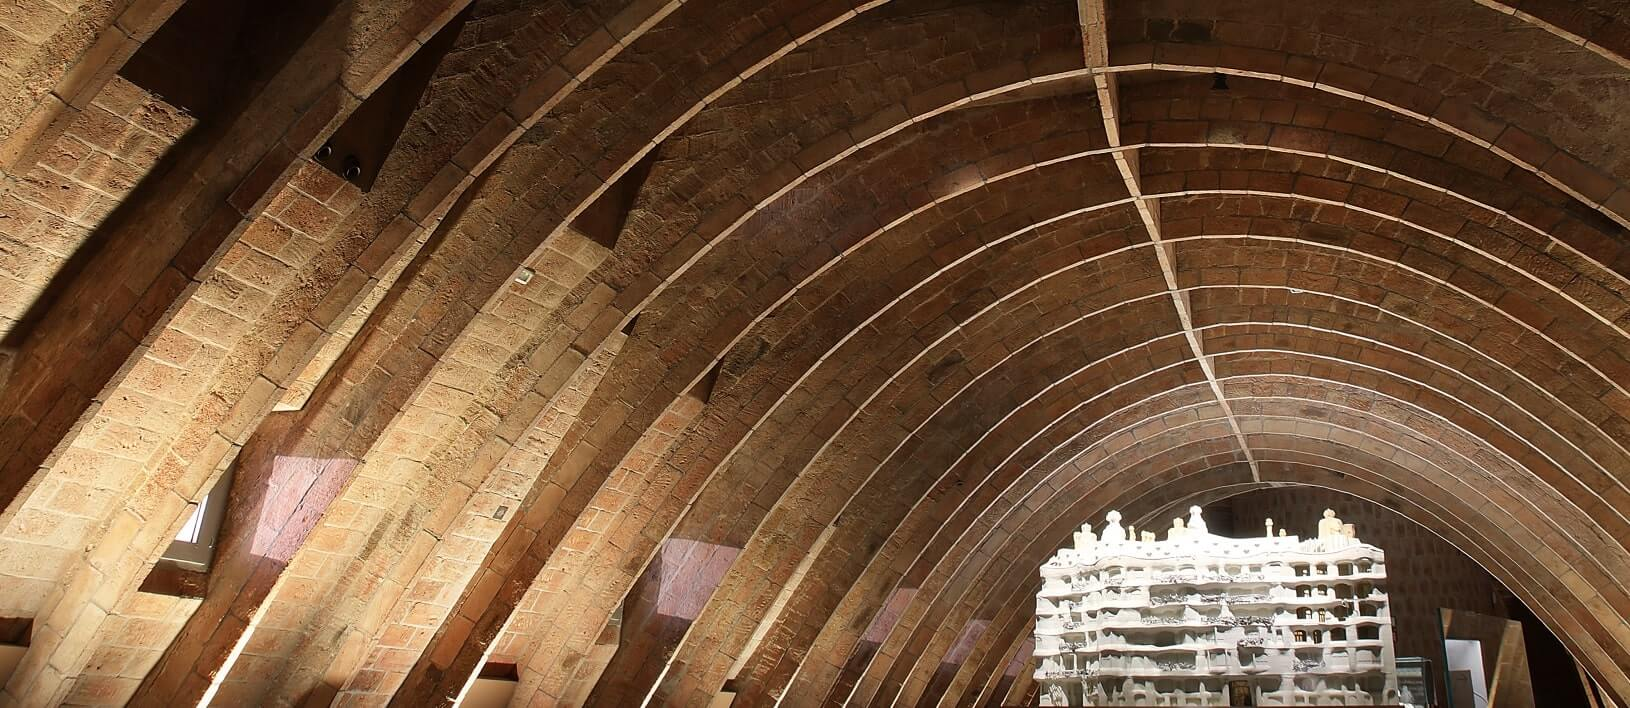 Casa Mila Barcelona - The Whale Attic